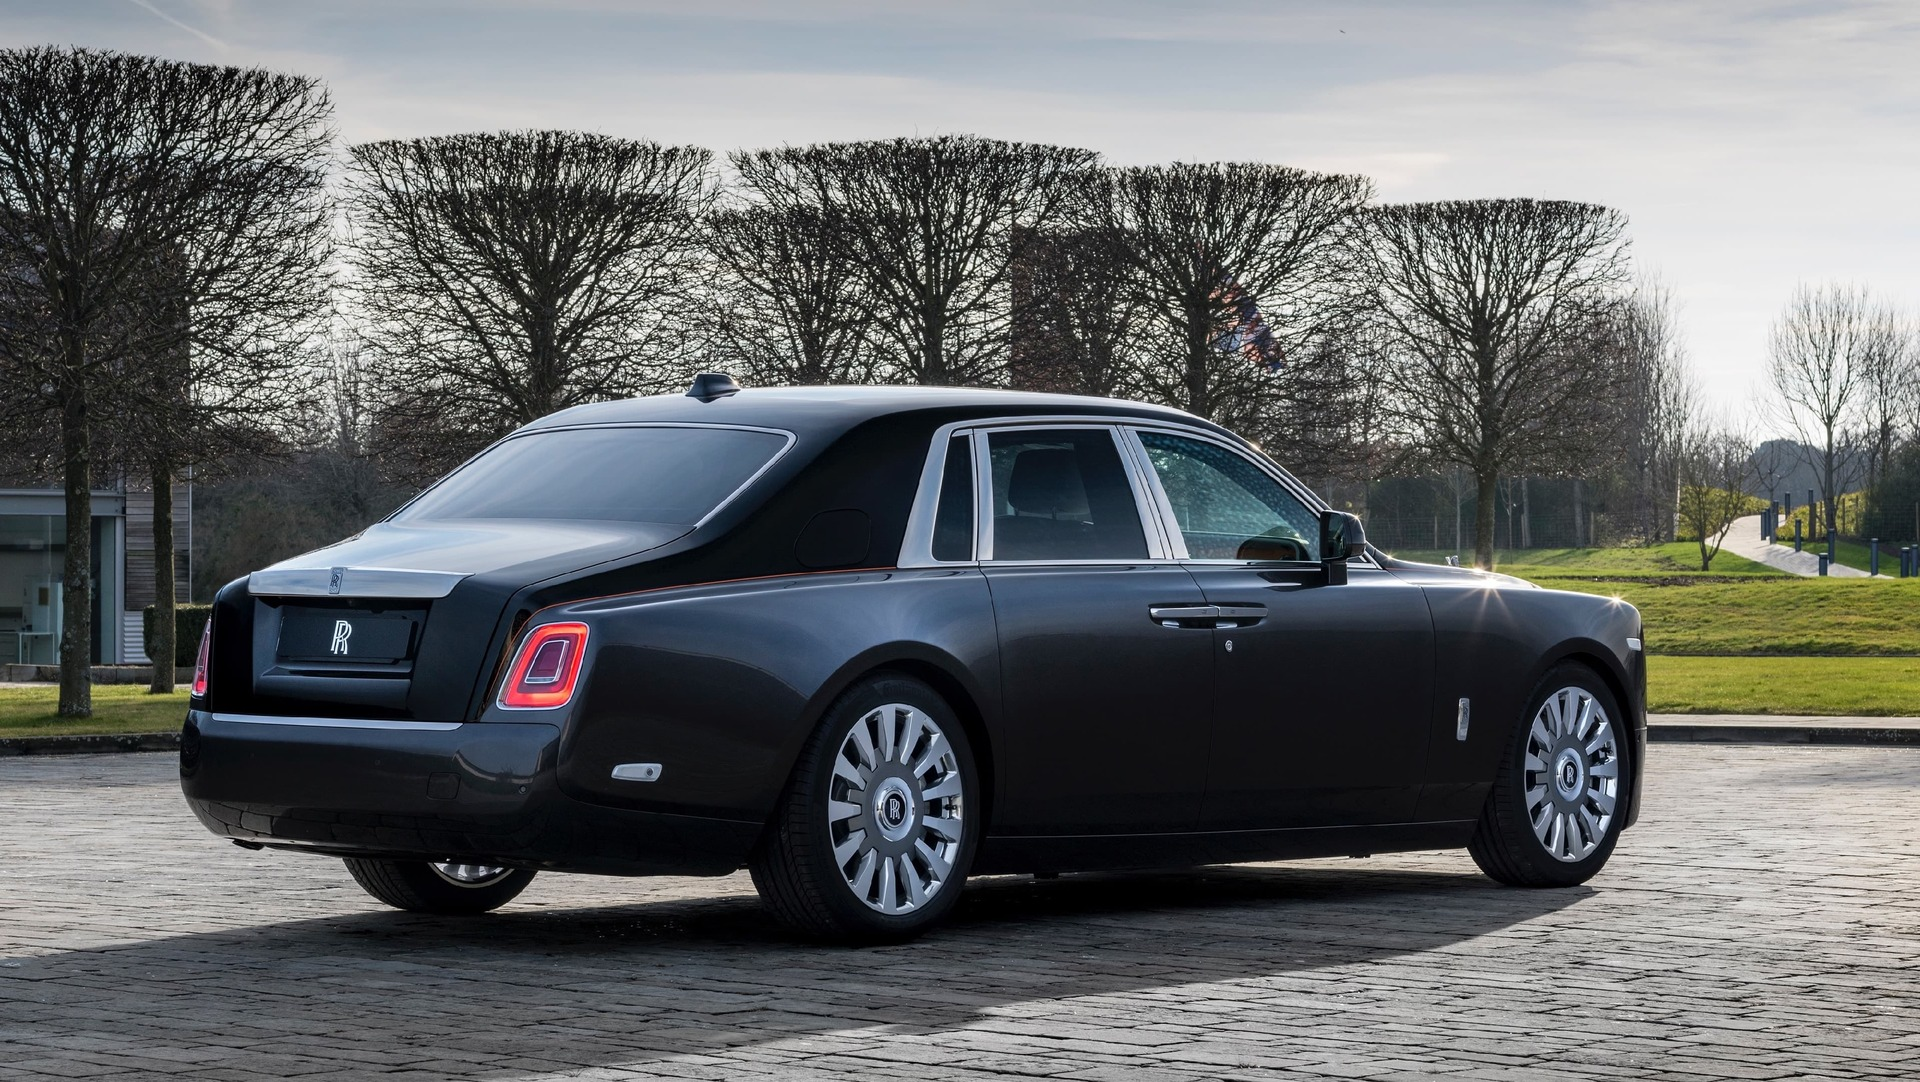 Rear view of gunmetal Rolls-Royce Phantom standard wheelbase